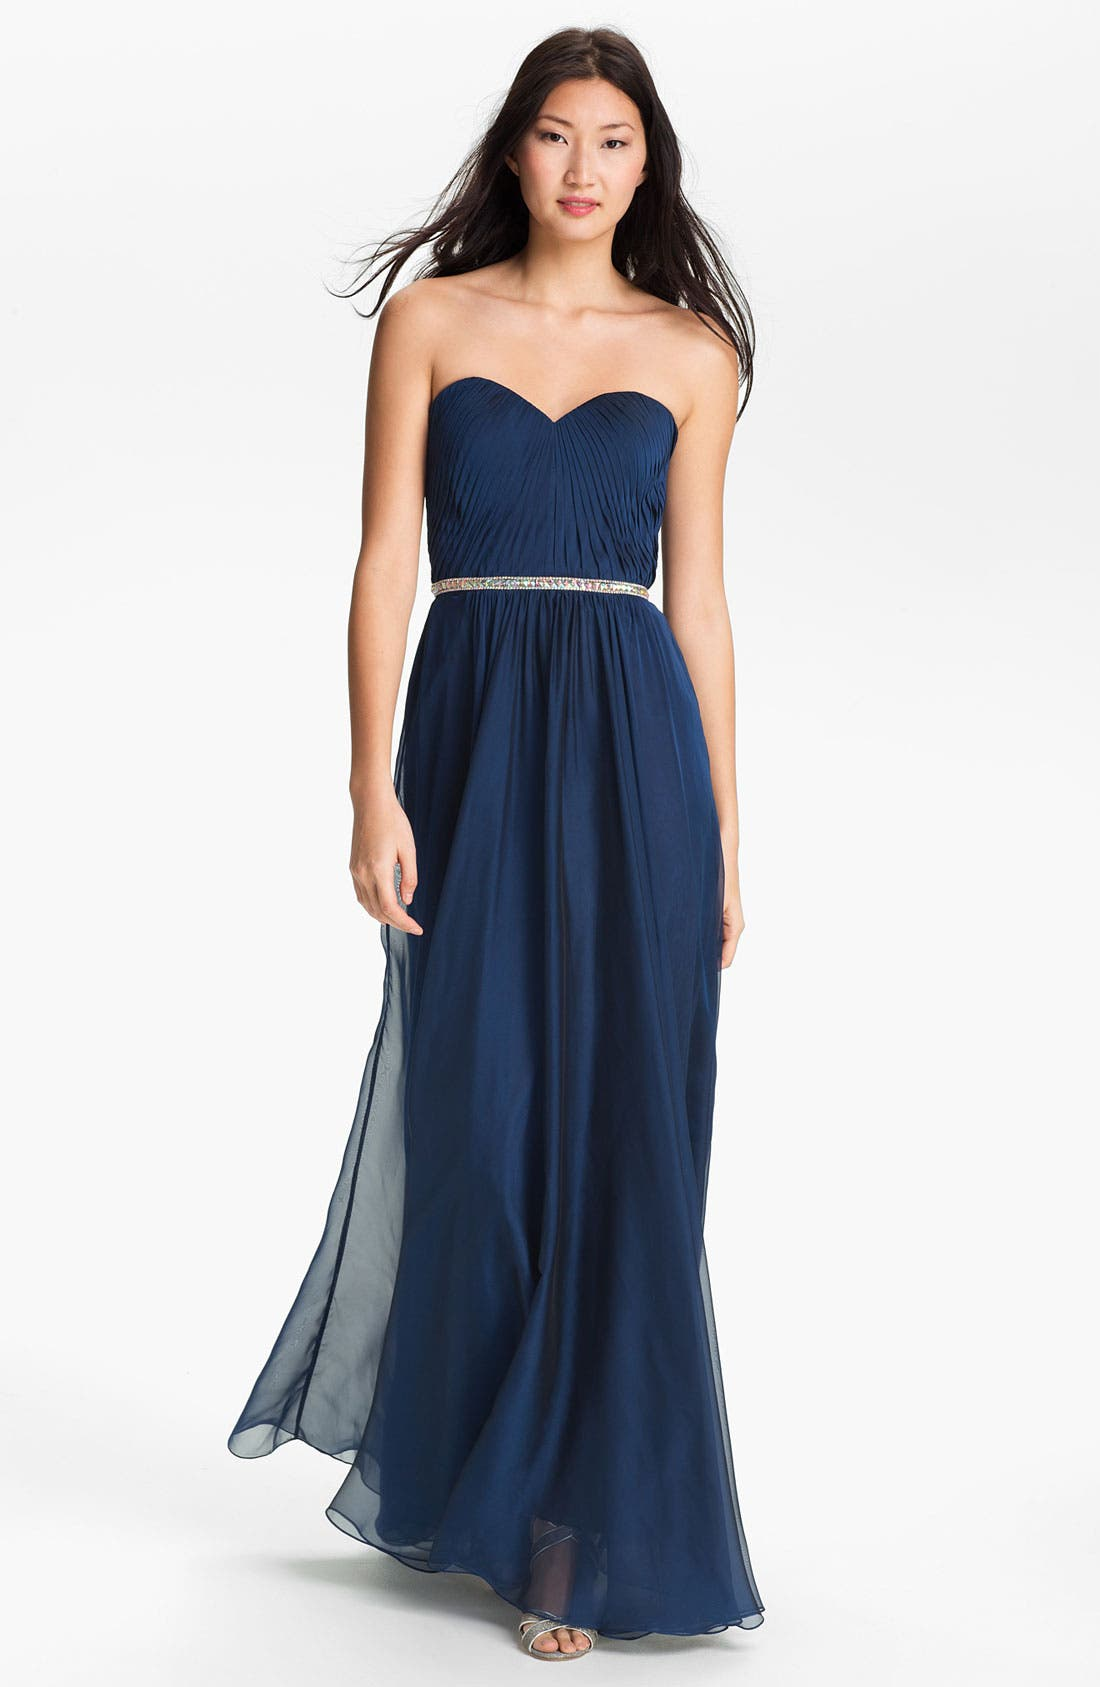 Alternate Image 1 Selected - La Femme Embellished Chiffon Strapless Gown